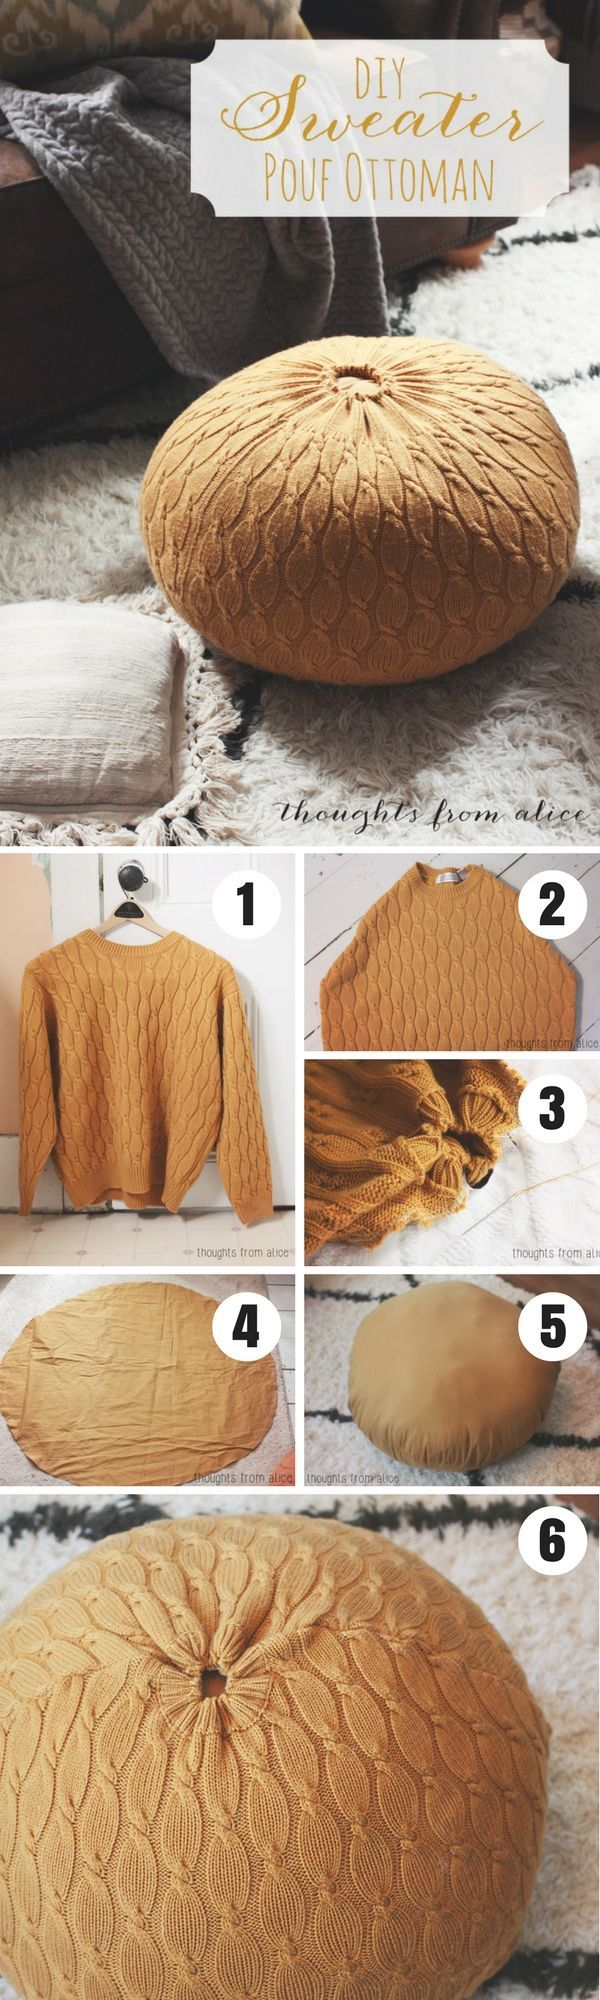 Check out how to turn an old sweater into a DIY pouf @istandarddesign